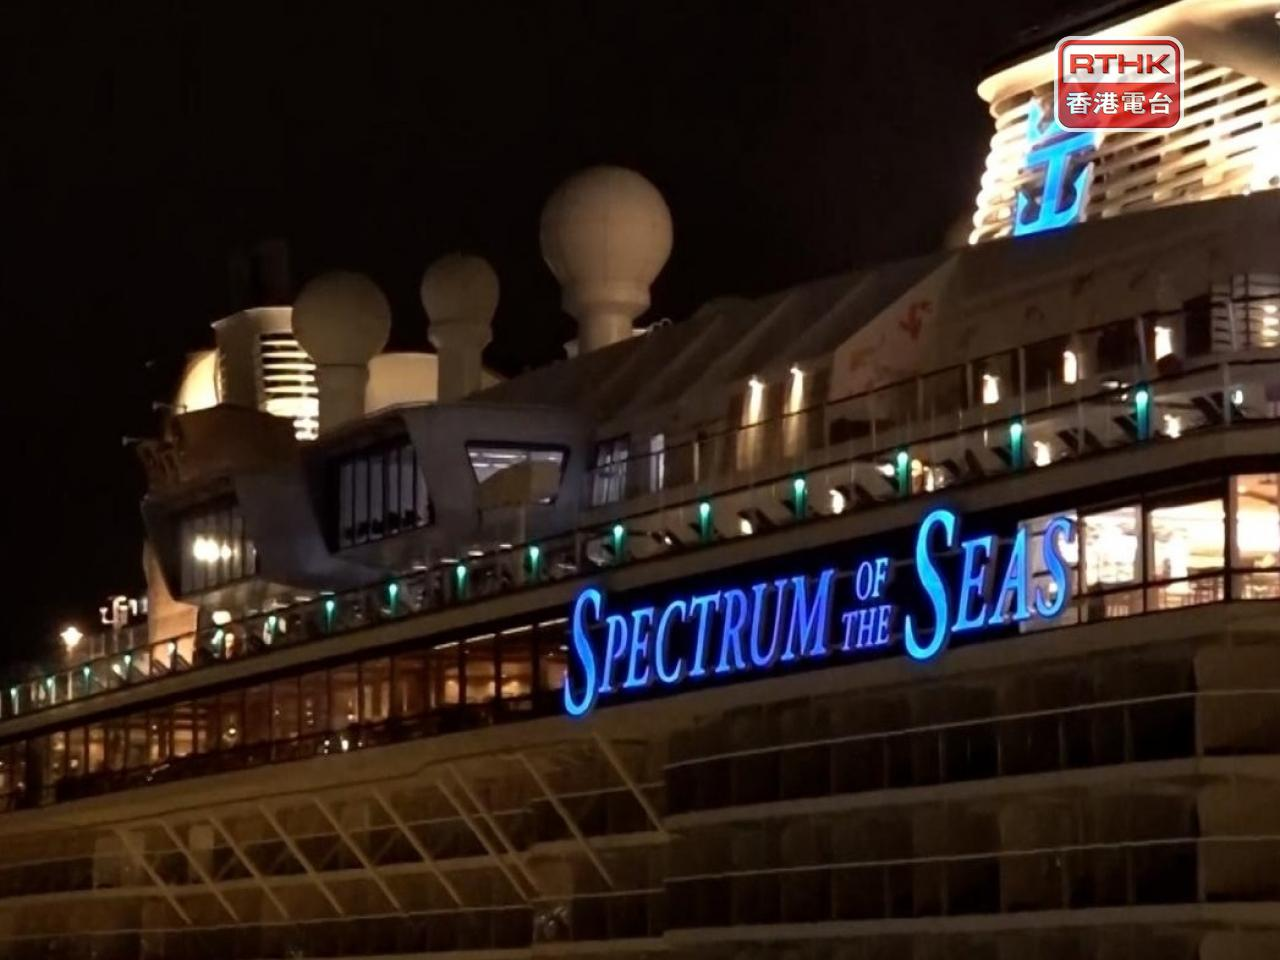 Cruise trip scrapped over suspected Covid case